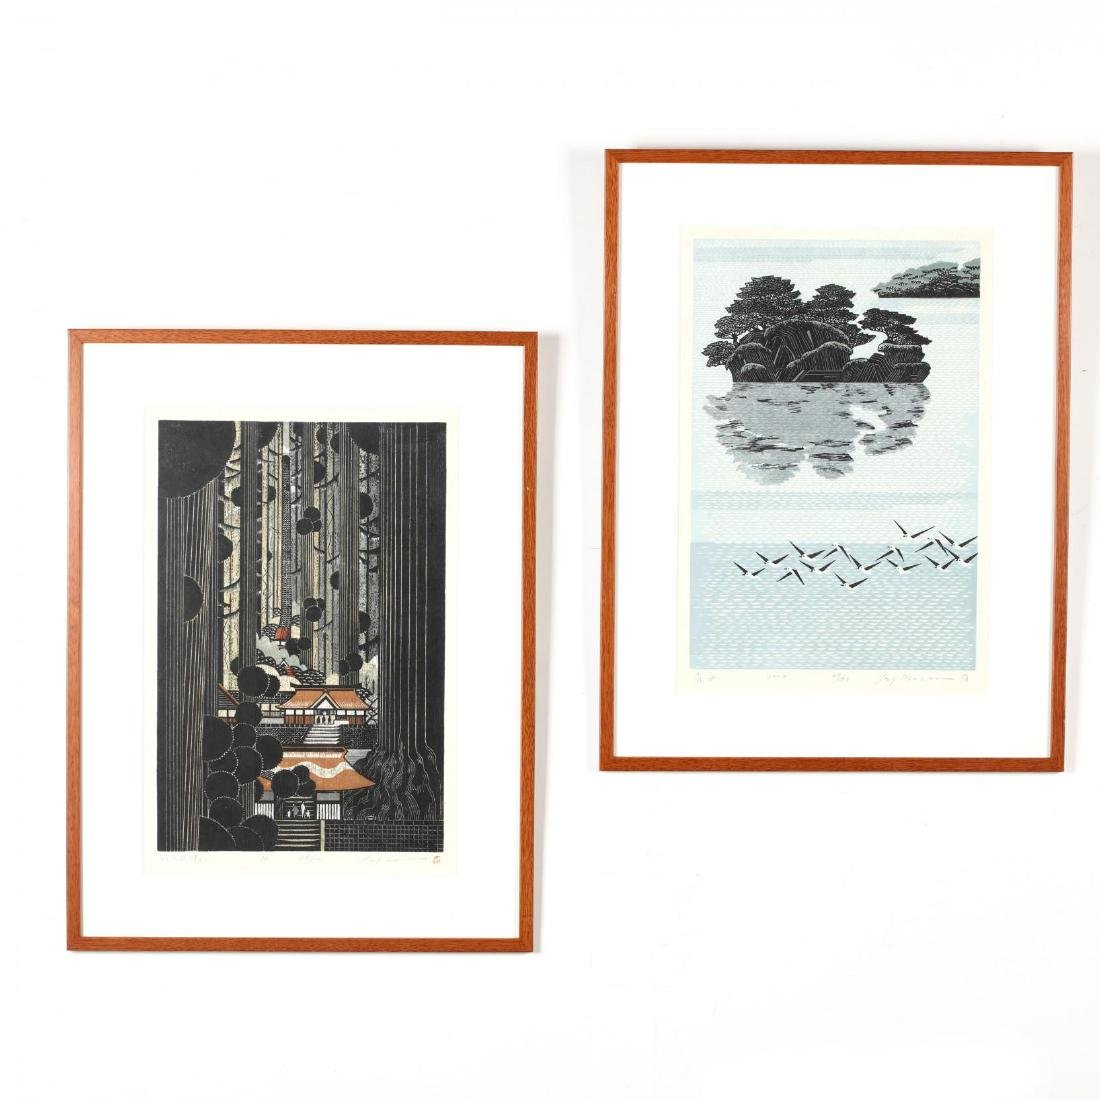 Two Japanese Woodblock Prints by Ray Morimura (b. 1948)